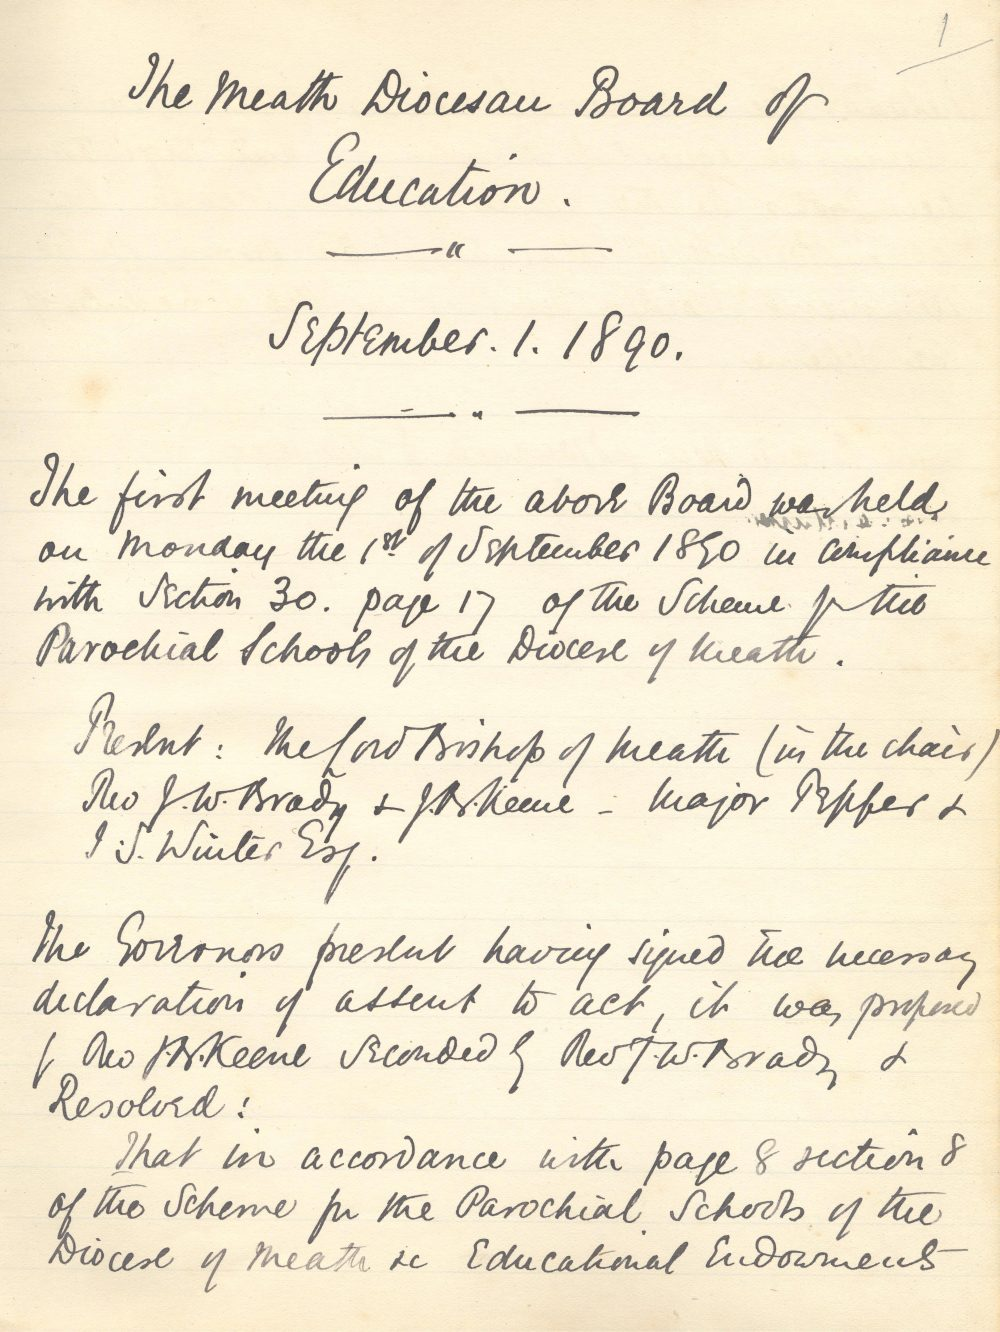 Minute book of the Meath Diocesan Board of Education, commencing in 1890, RCB Library D7/13/1/1